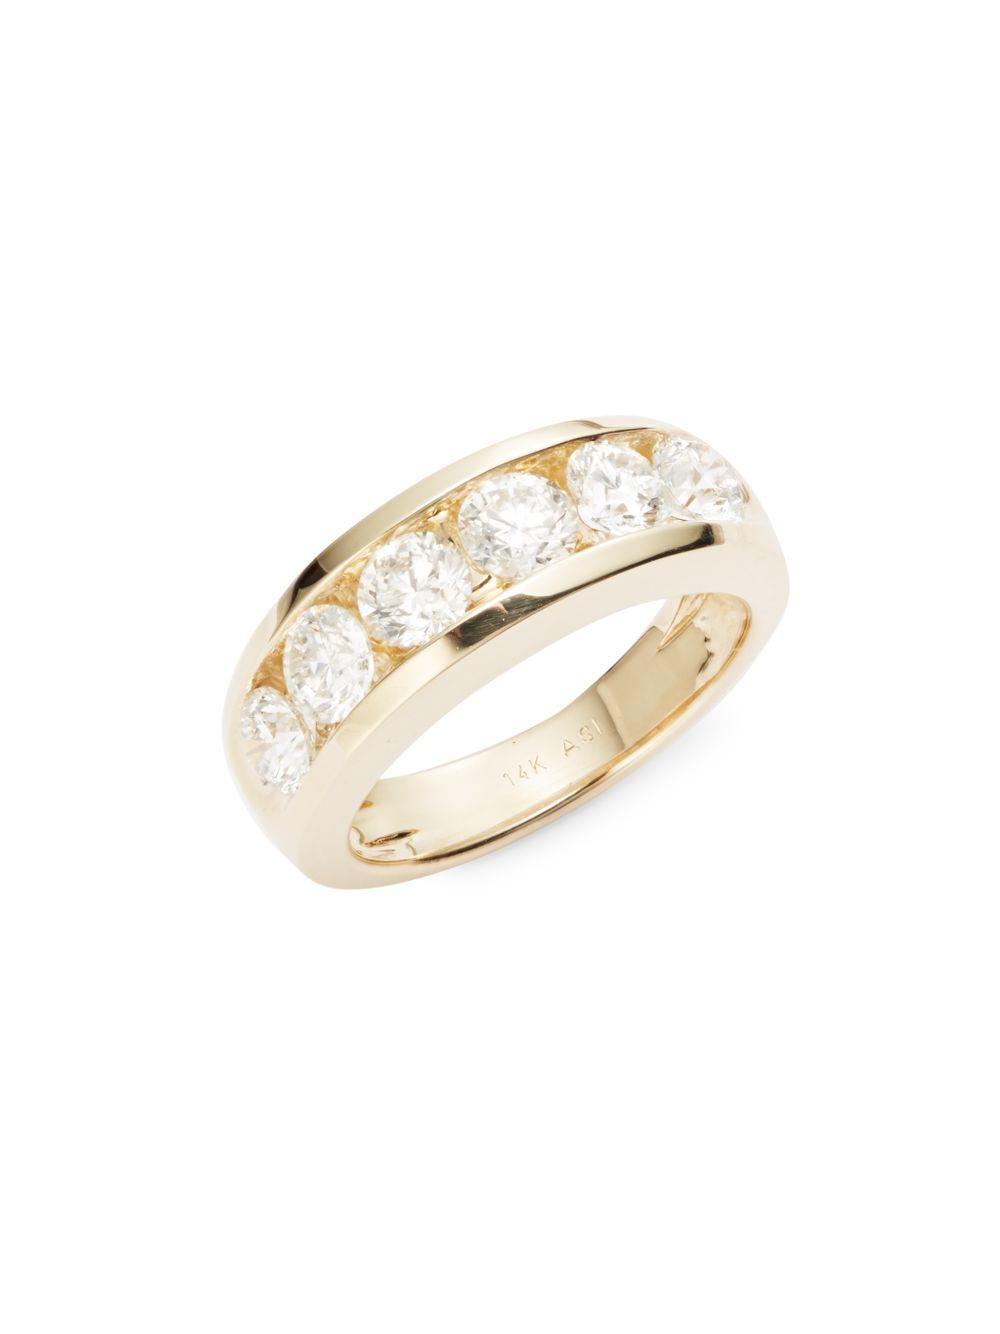 14c546172a209 Lyst - Saks Fifth Avenue Diamond & 14k Yellow Gold Band Ring in ...